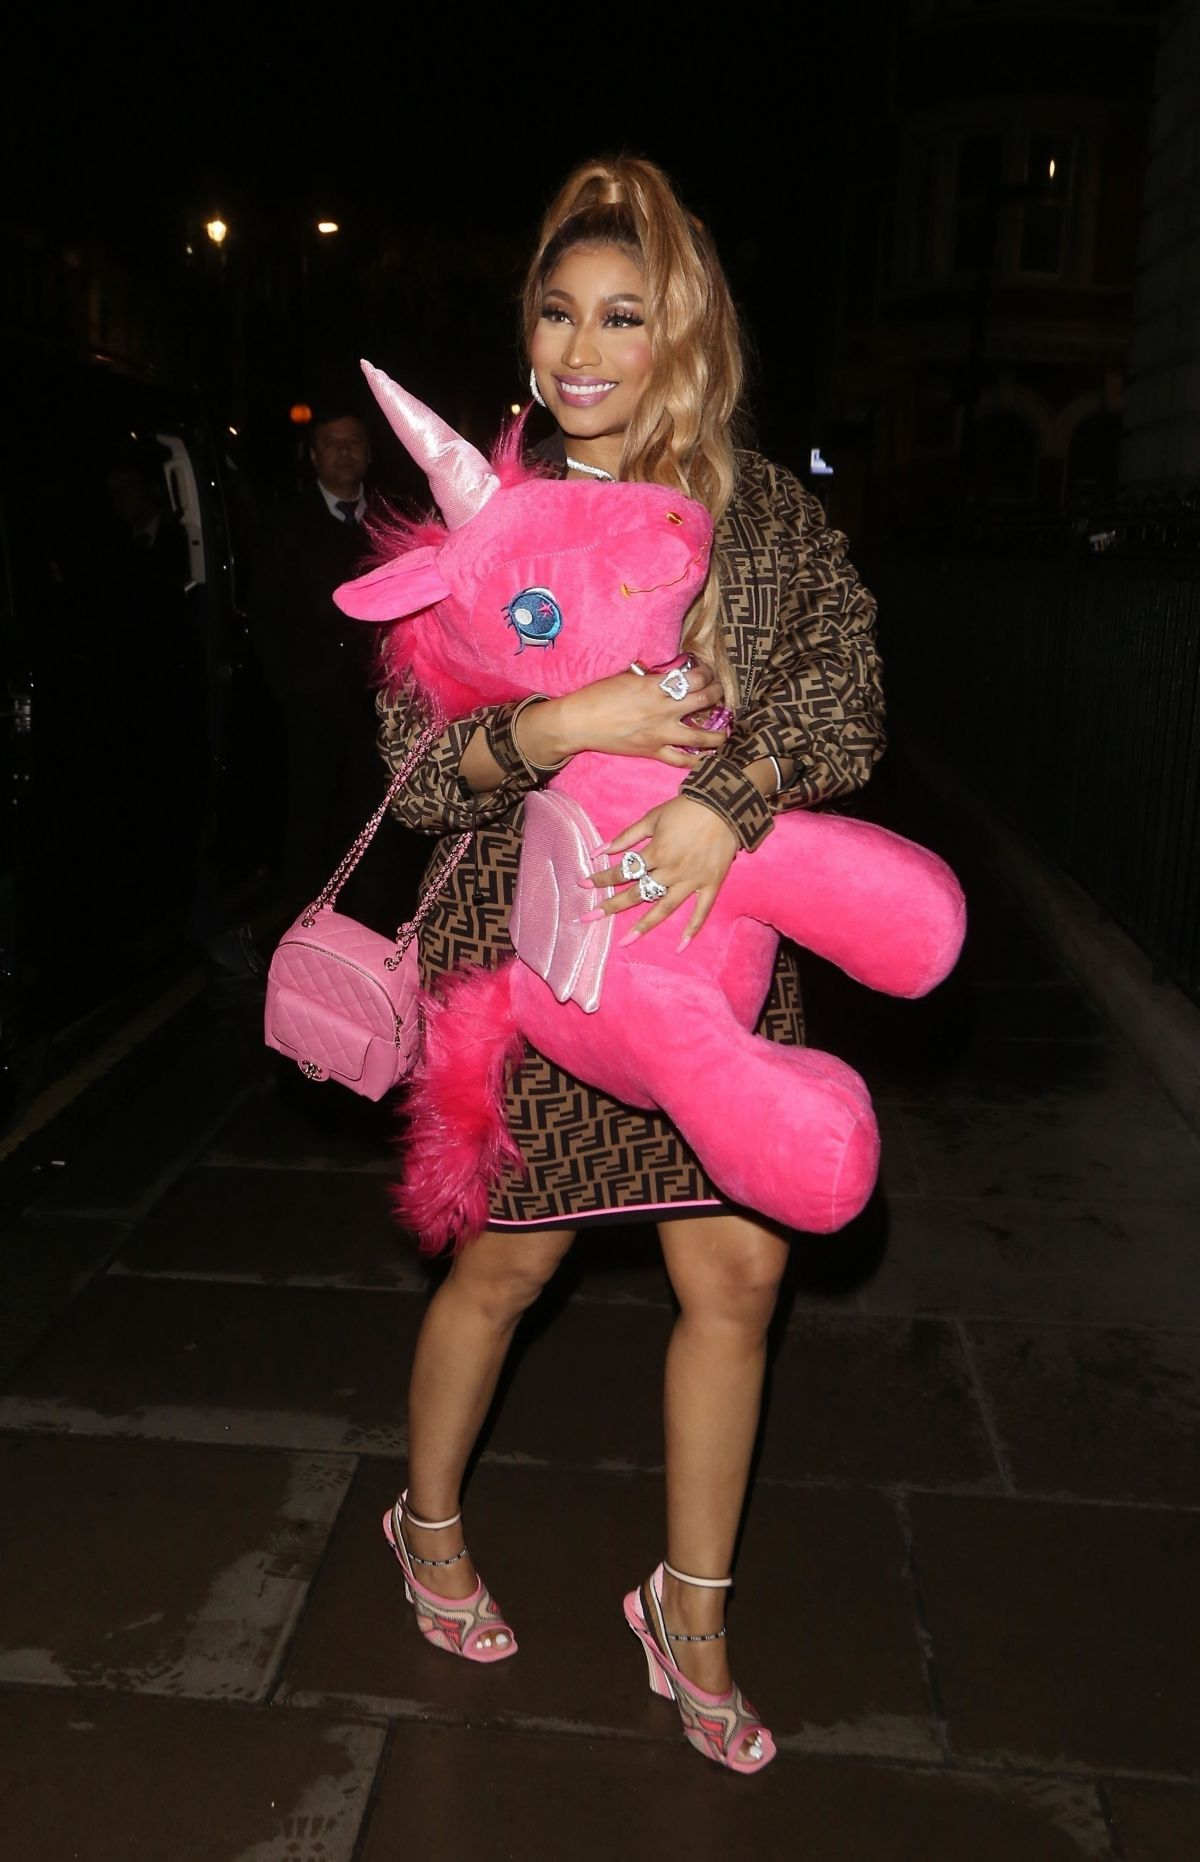 NICKI MINAJ Leaves Opium Restaurant & Club in London 03/11 ...